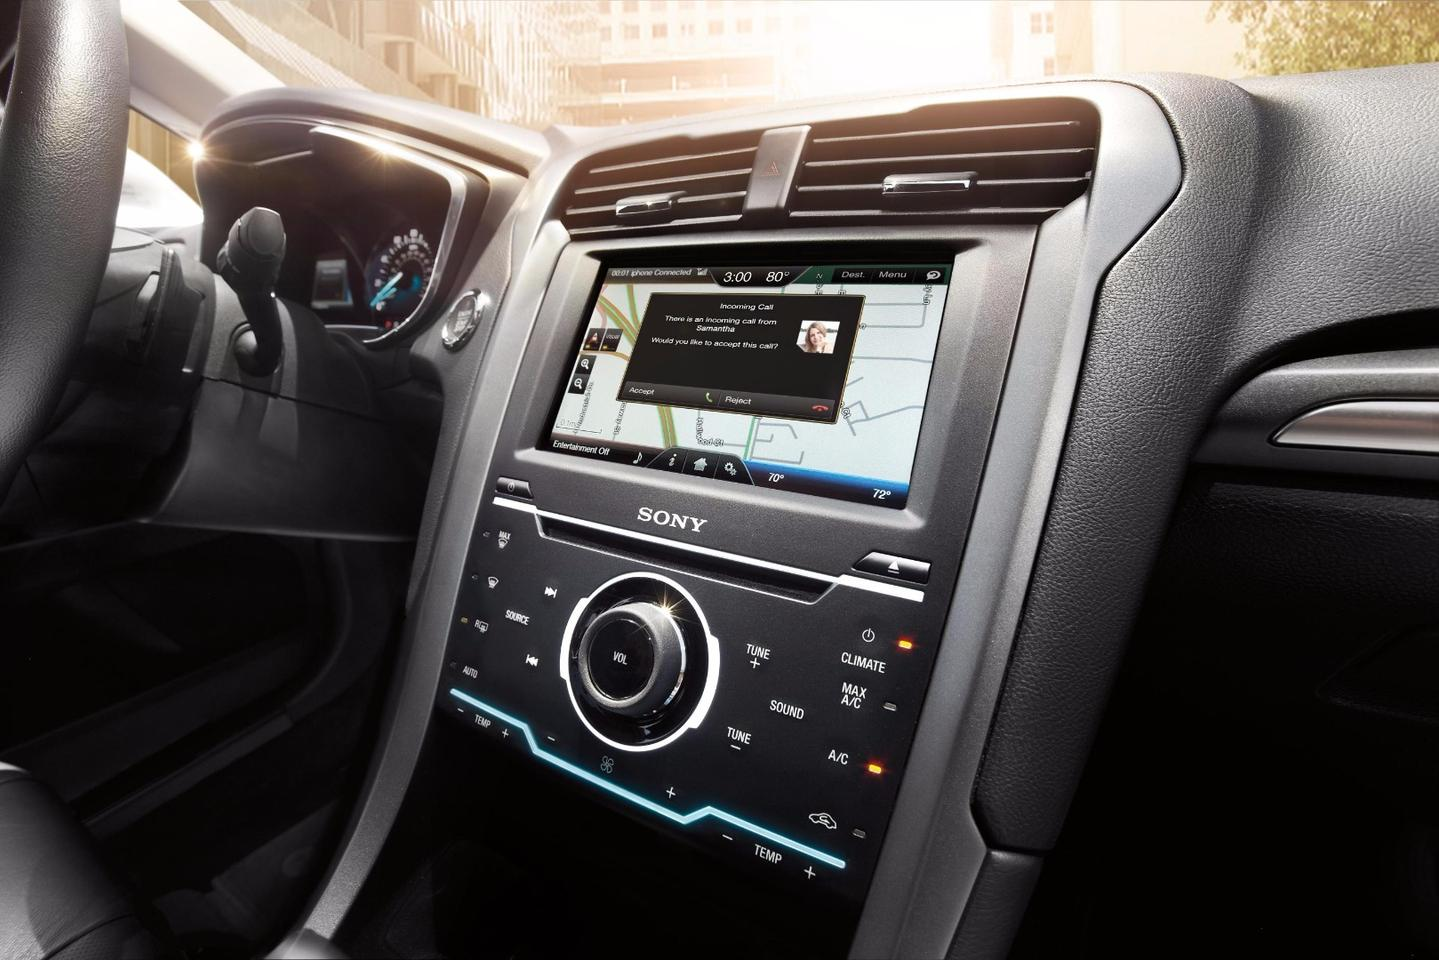 The Ford software update is the first major update to the SYNC system that is on the fly